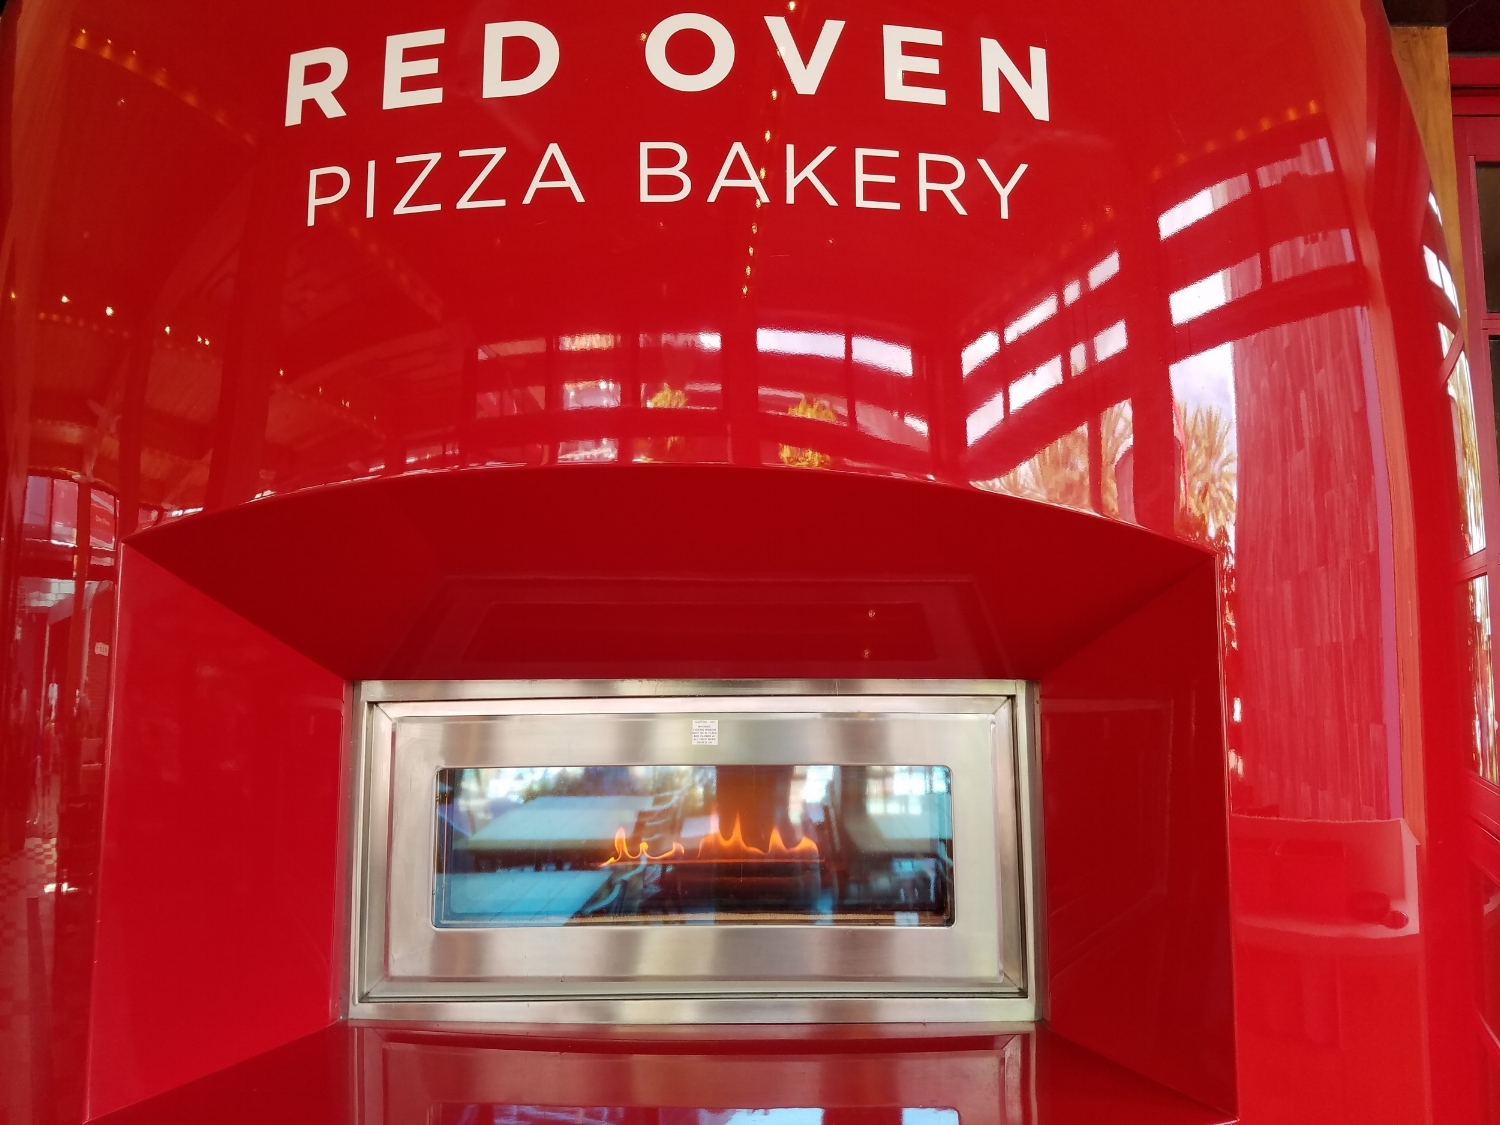 Oven at Red Oven Pizza Bakery